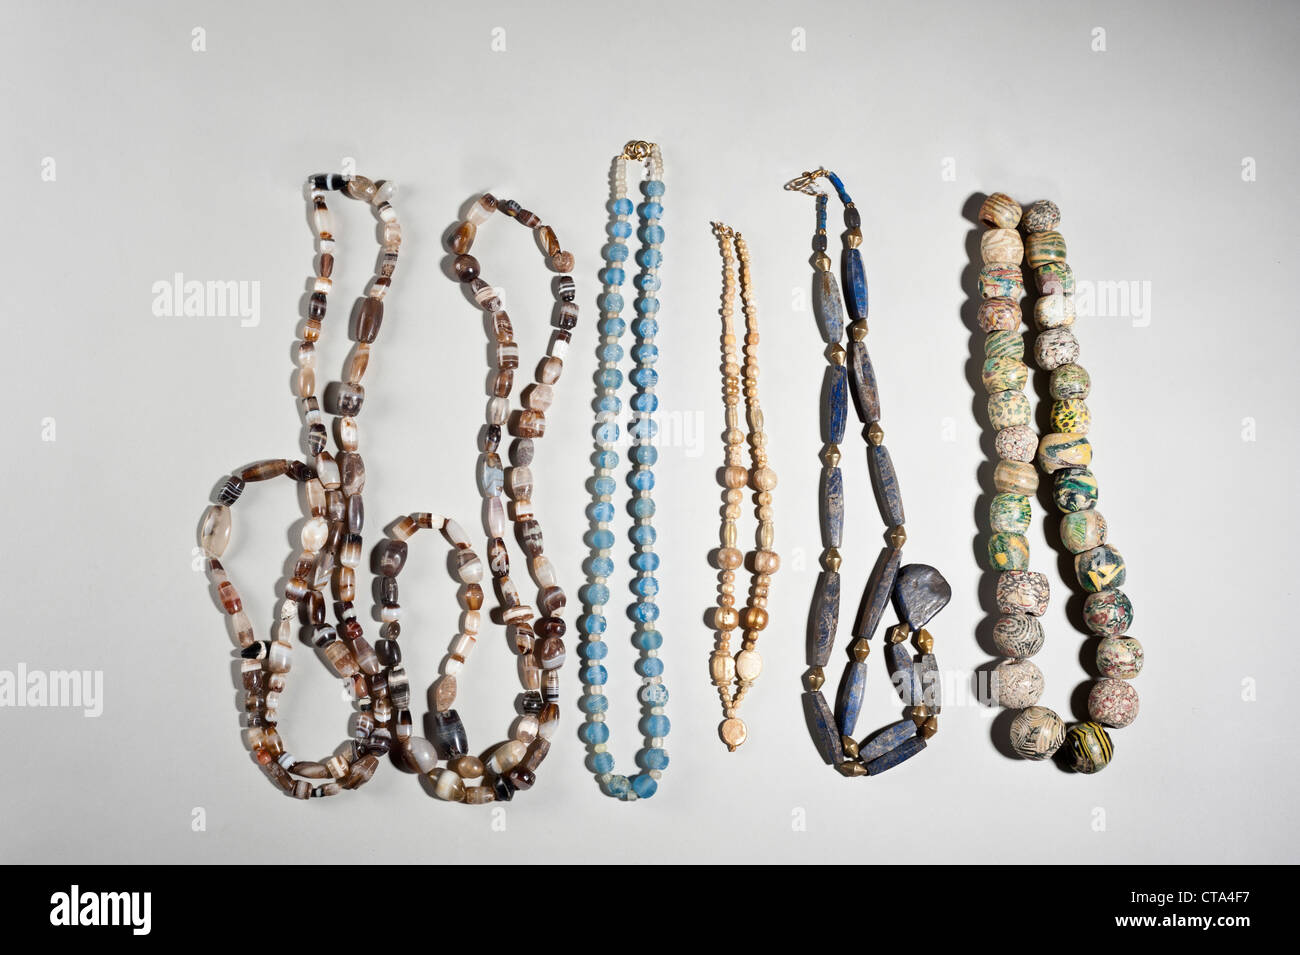 Hellenistic and Roman Bead necklaces - Stock Image